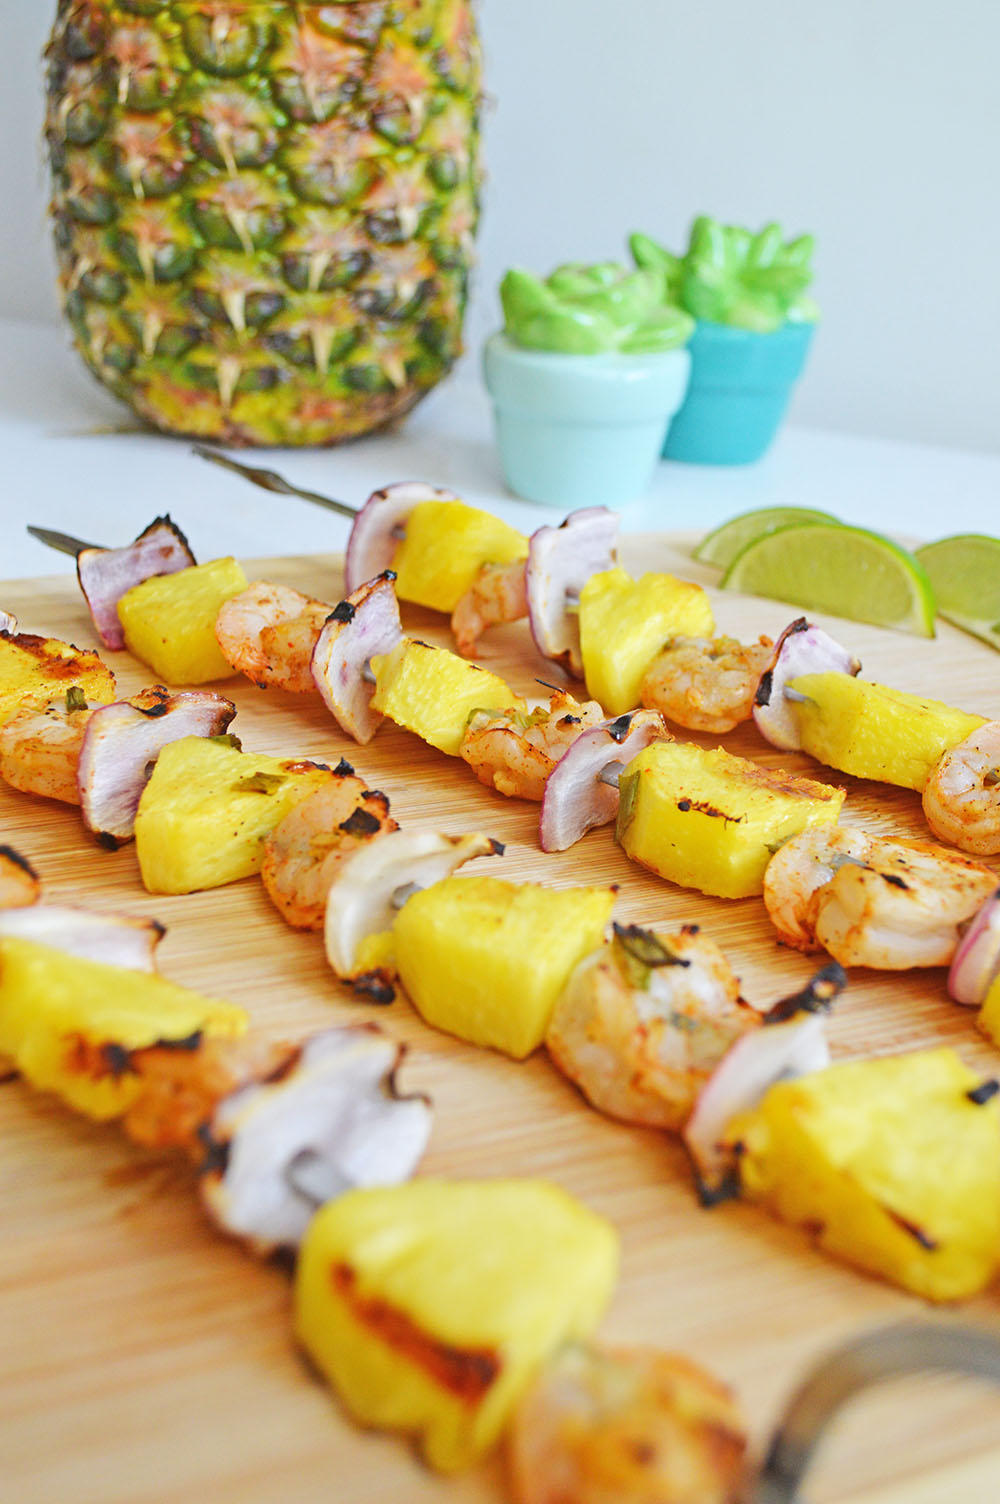 Chili Lime Shrimp Skewers Recipe